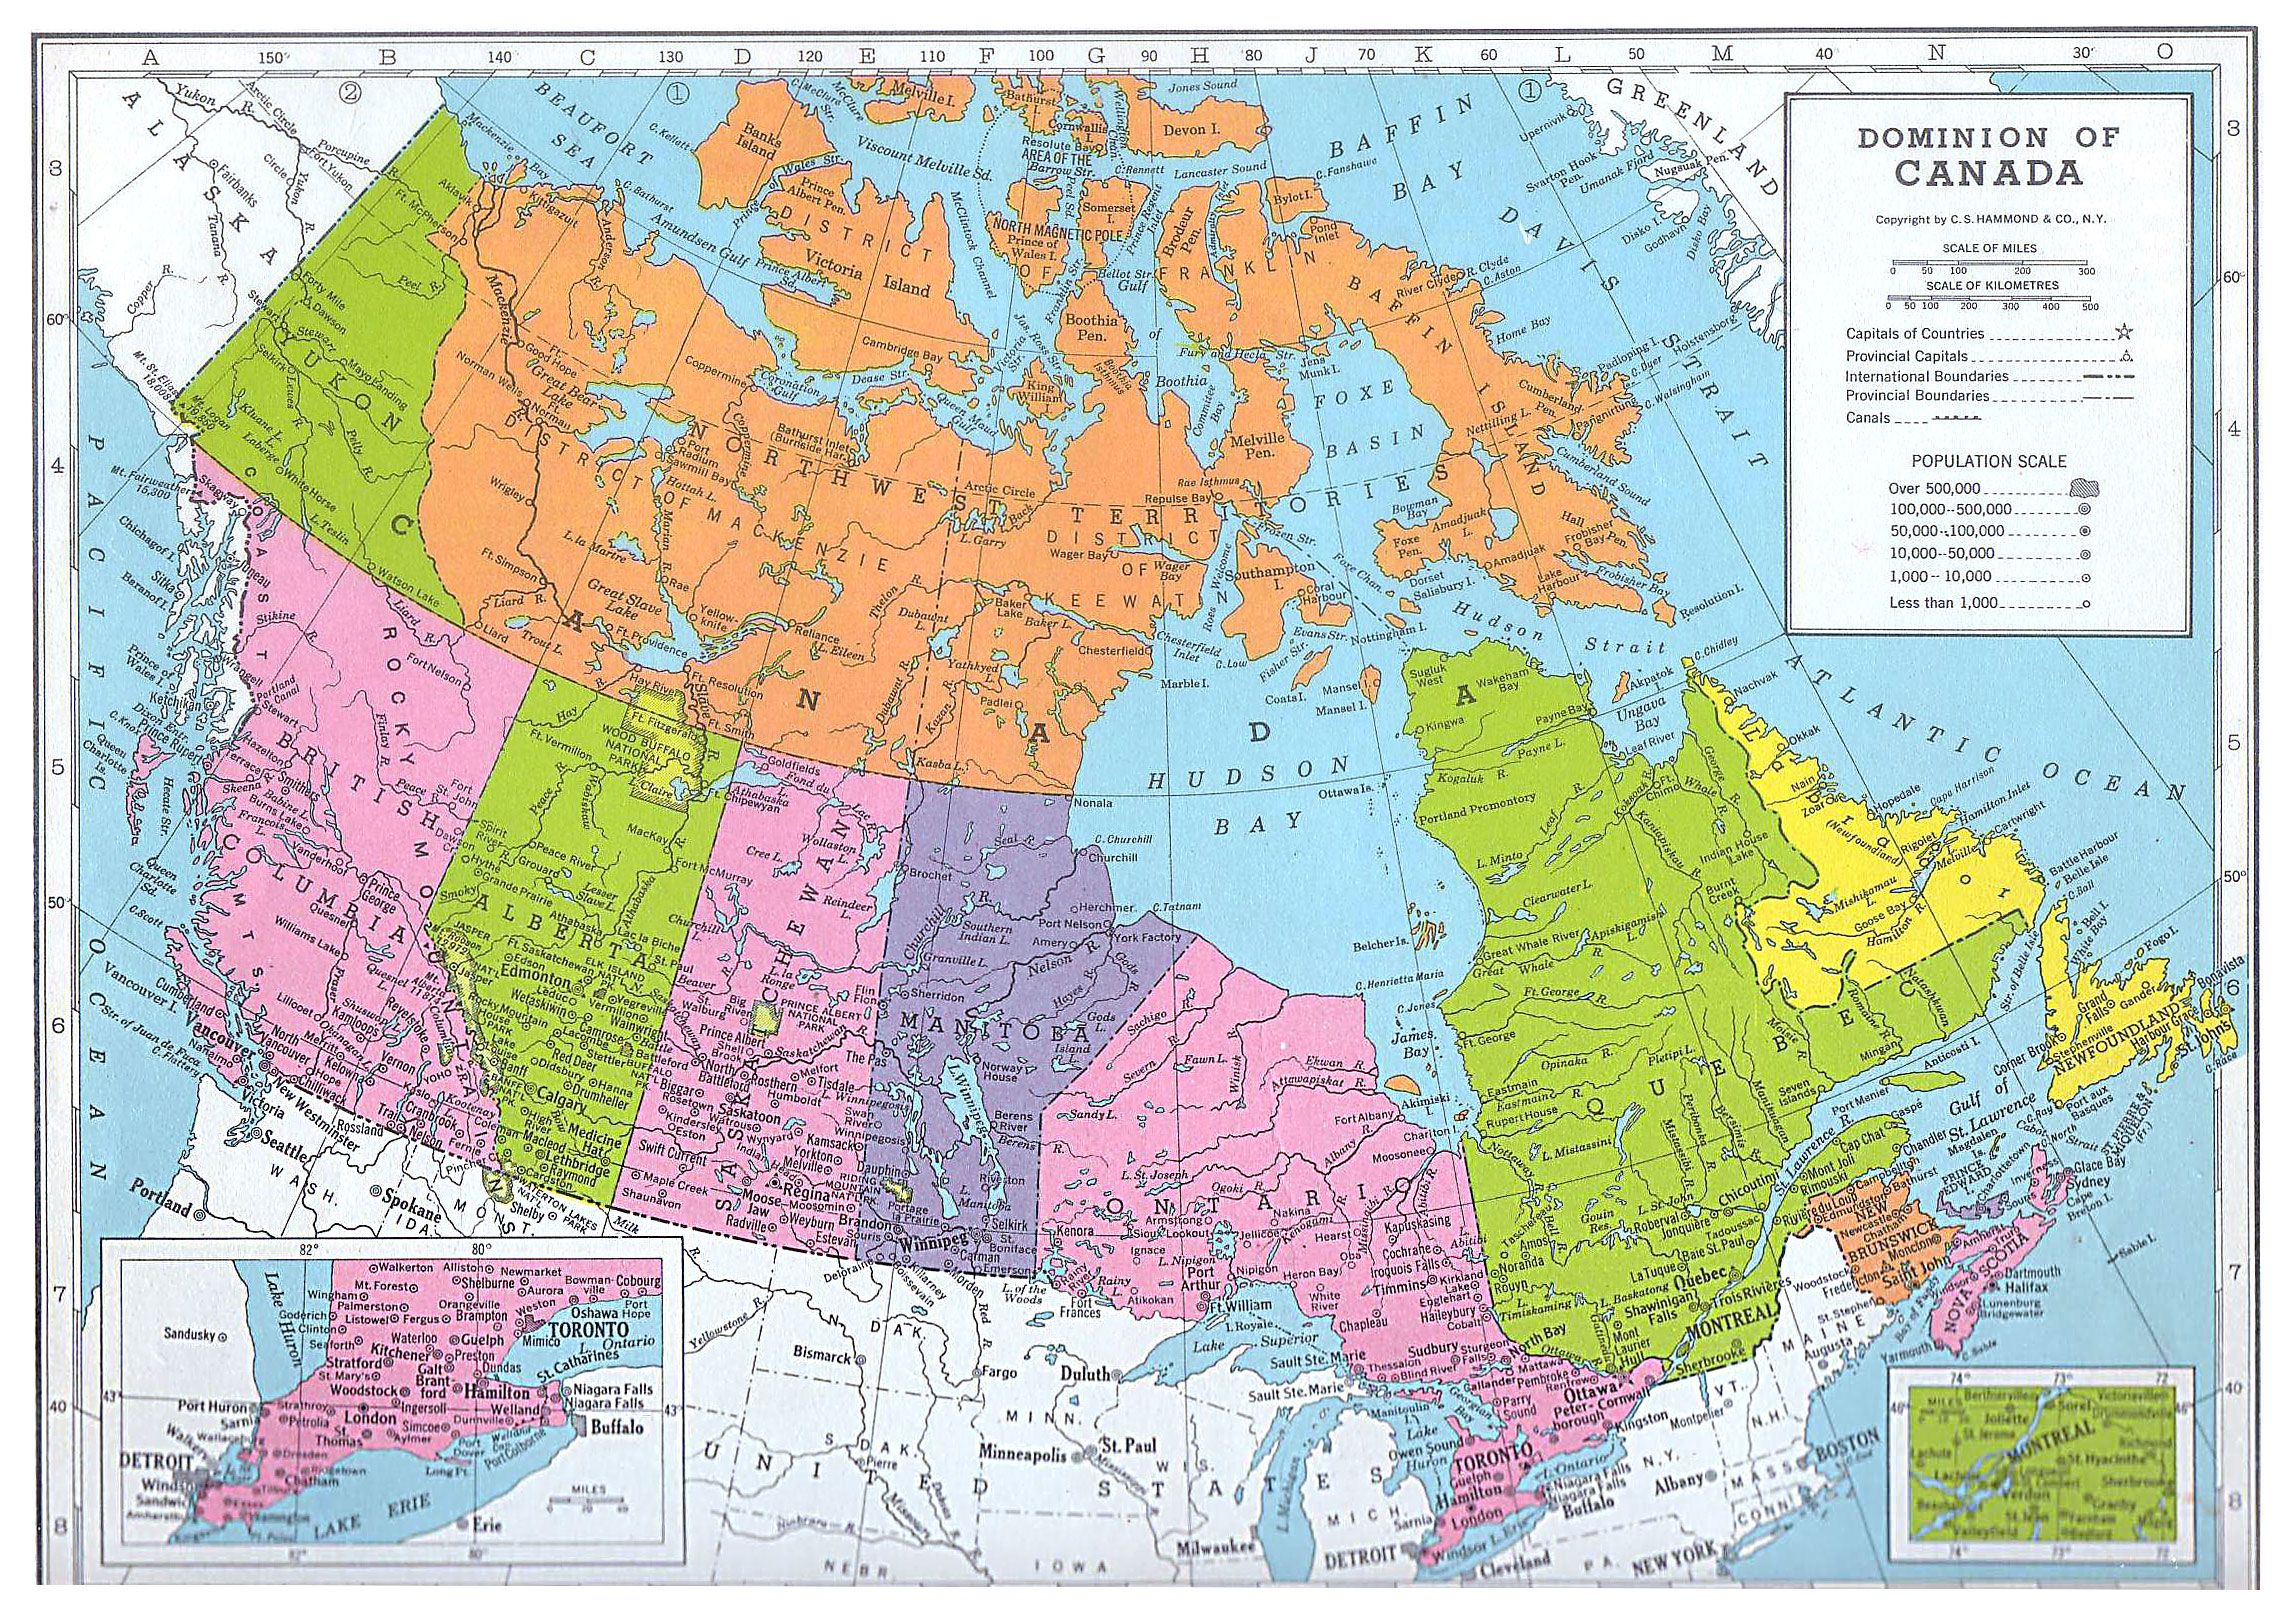 Canada 1949 map | COUNTRY-----CANADA | Printable maps, Map ...